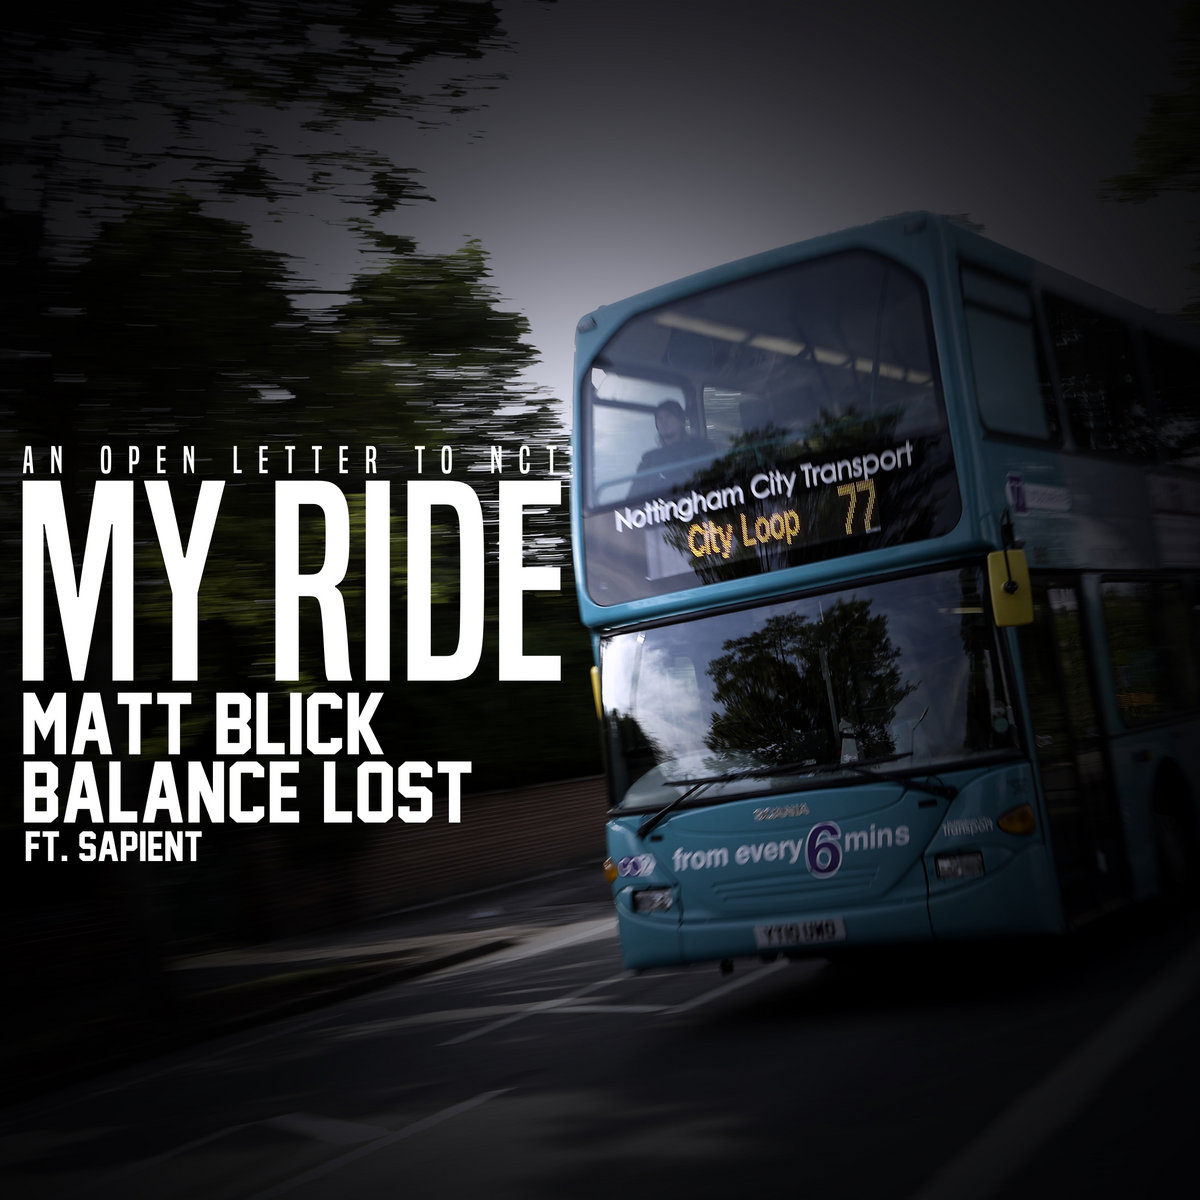 My Ride (An Open Letter To NCT) by Matt Blick & Balance Lost ft. Sapient